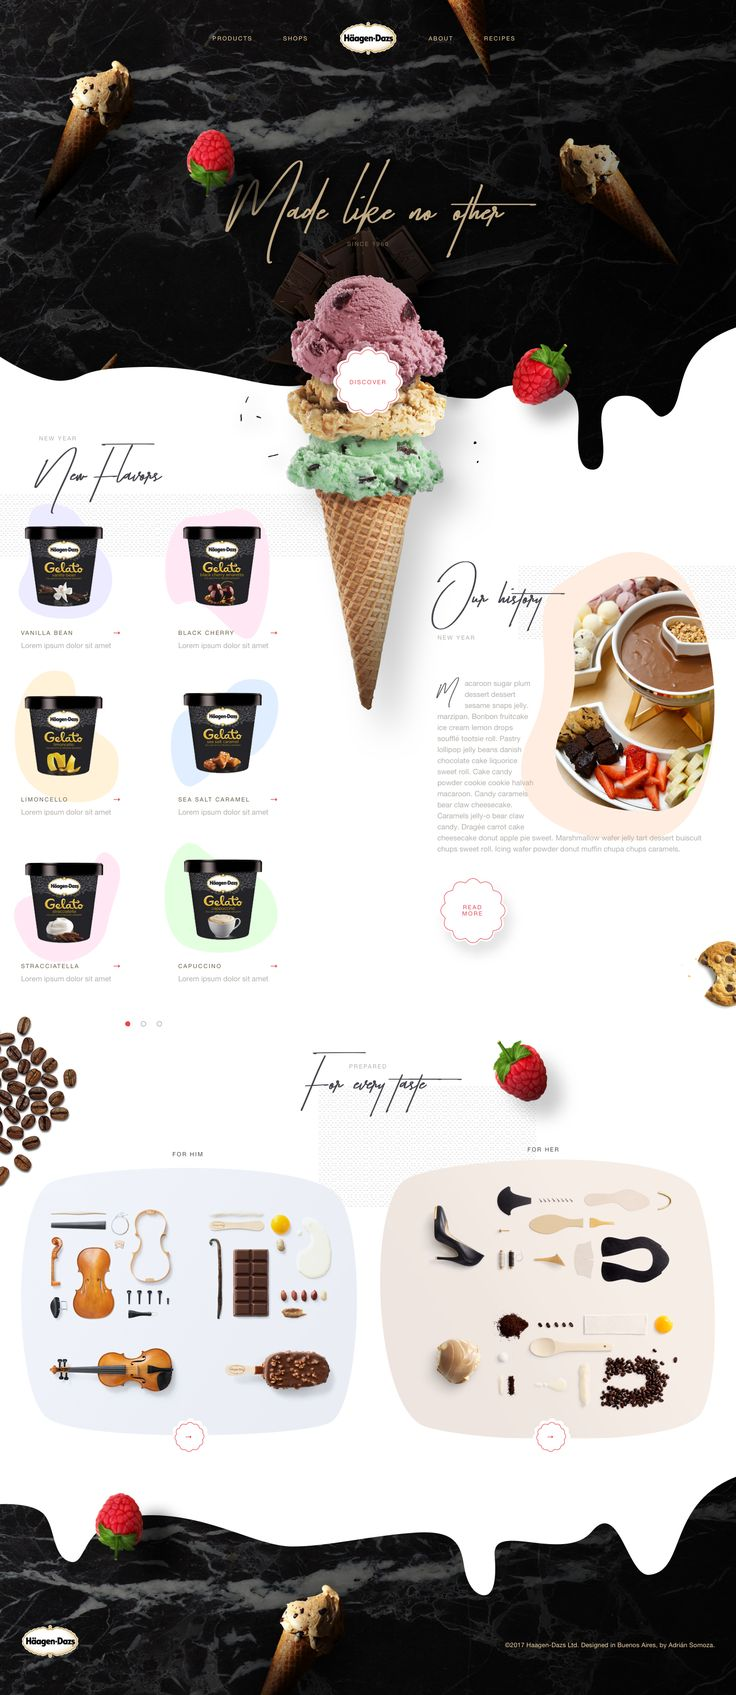 Häagen-Dazs Website Design